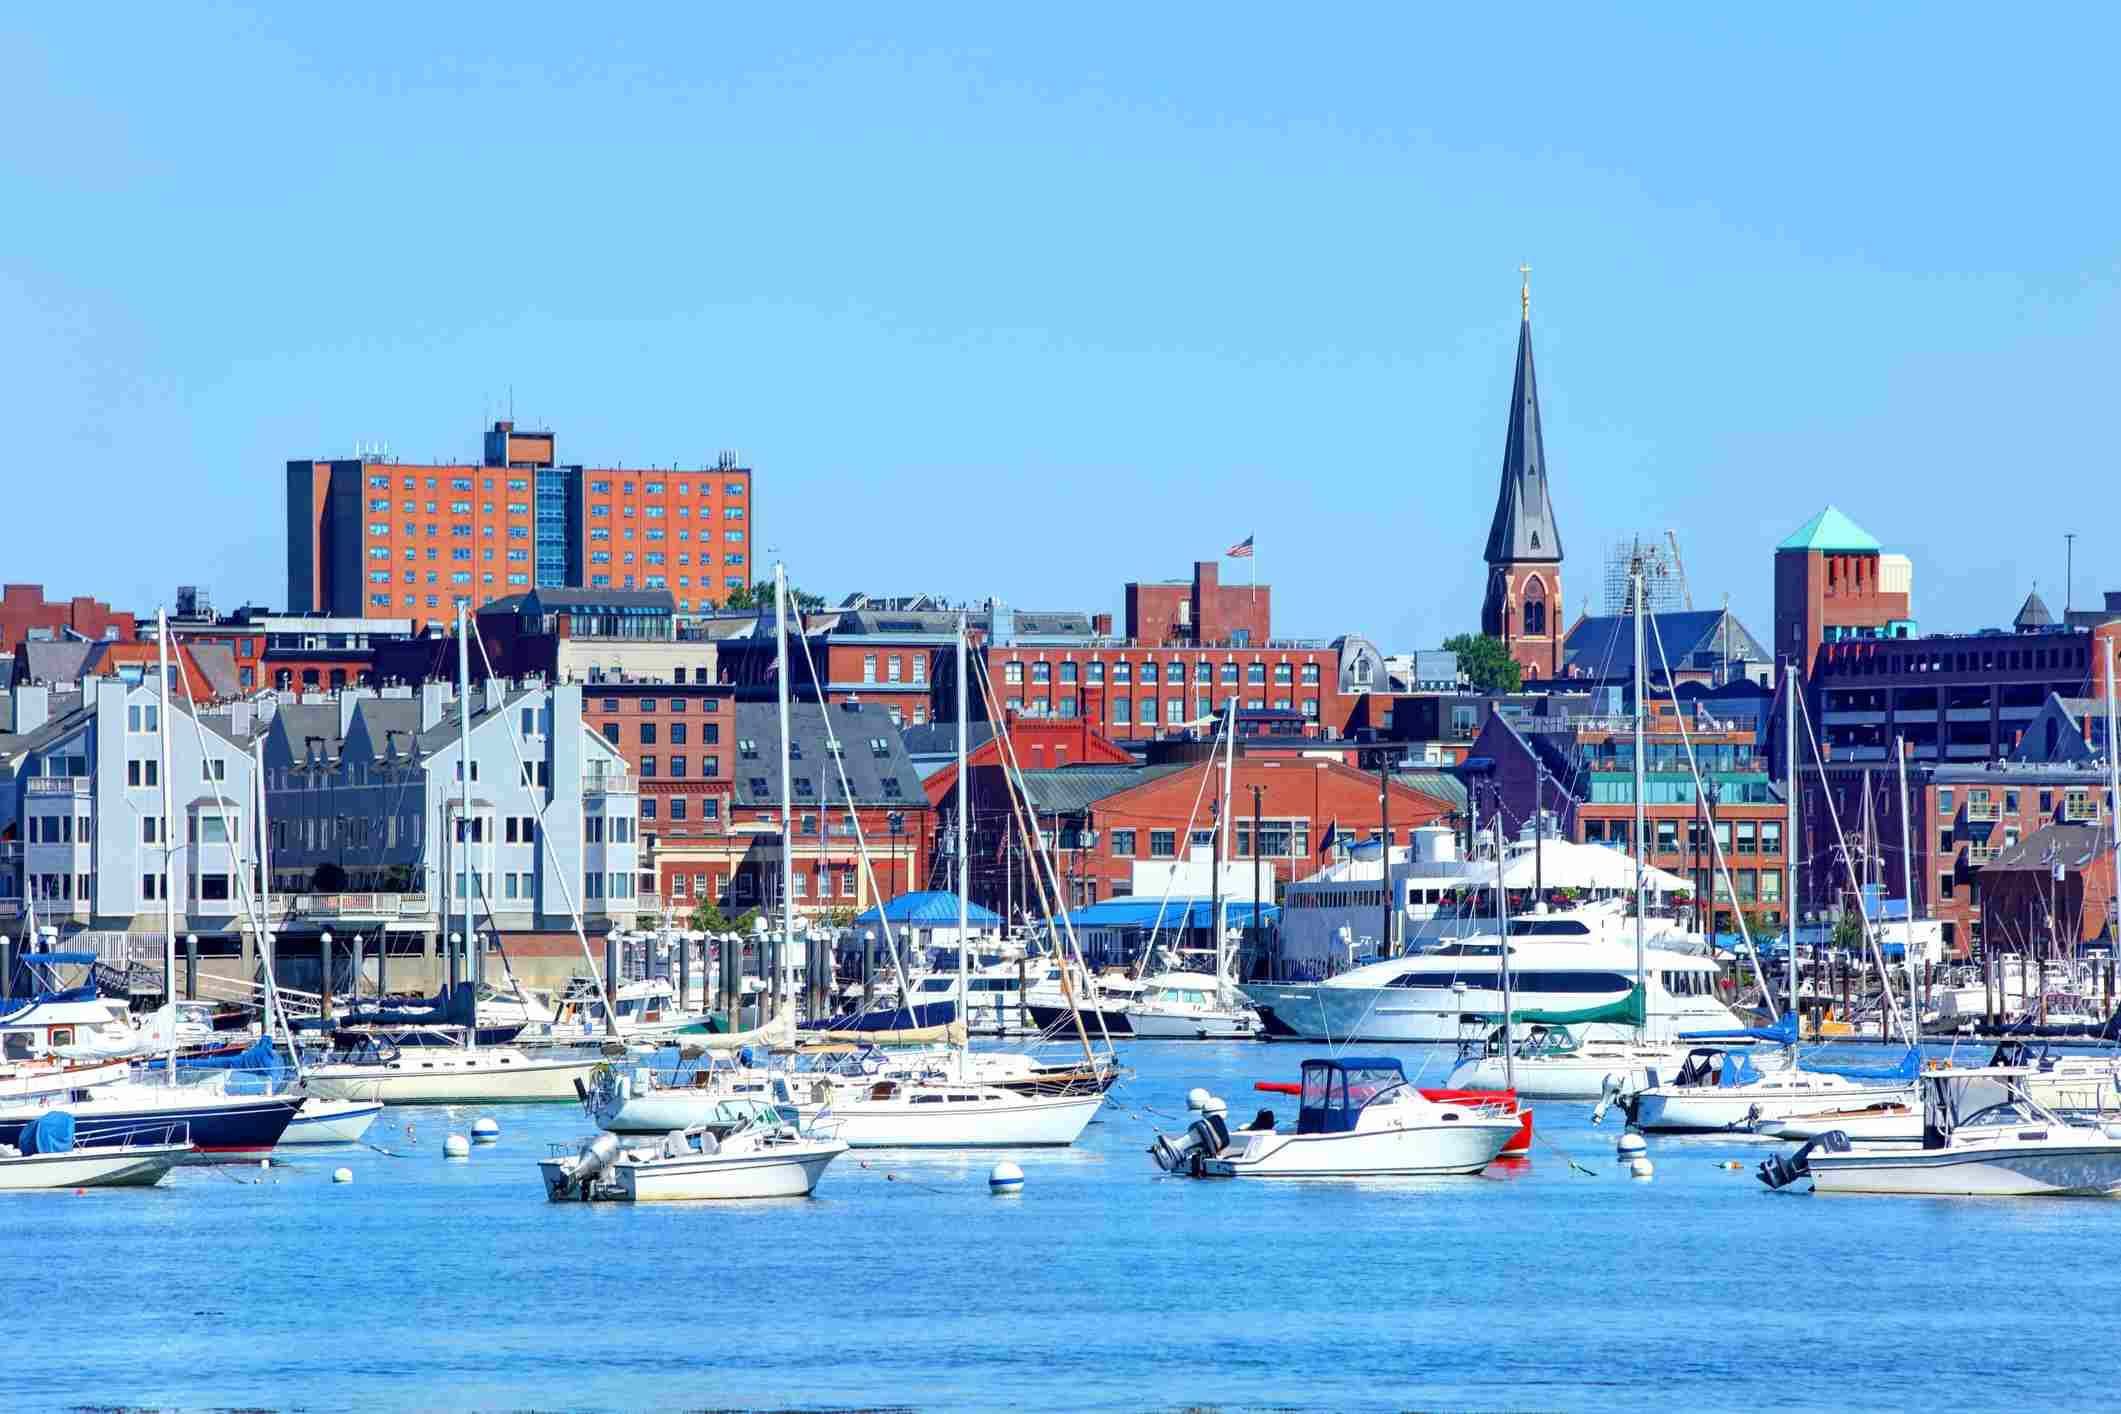 Portland, Maine from the harbor